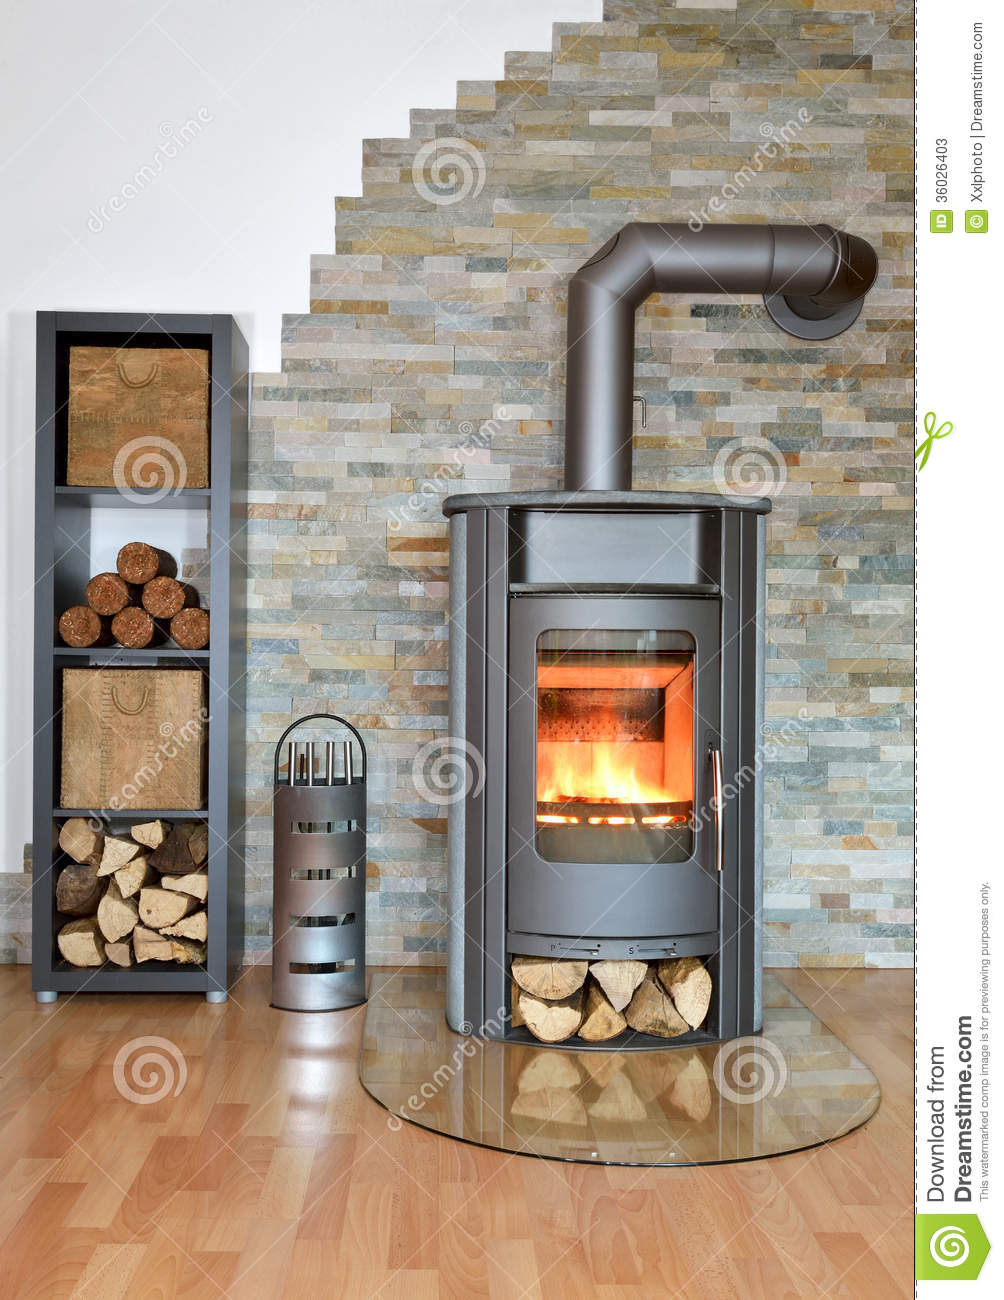 Wood Fired Stove Stock Photos Image 36026403